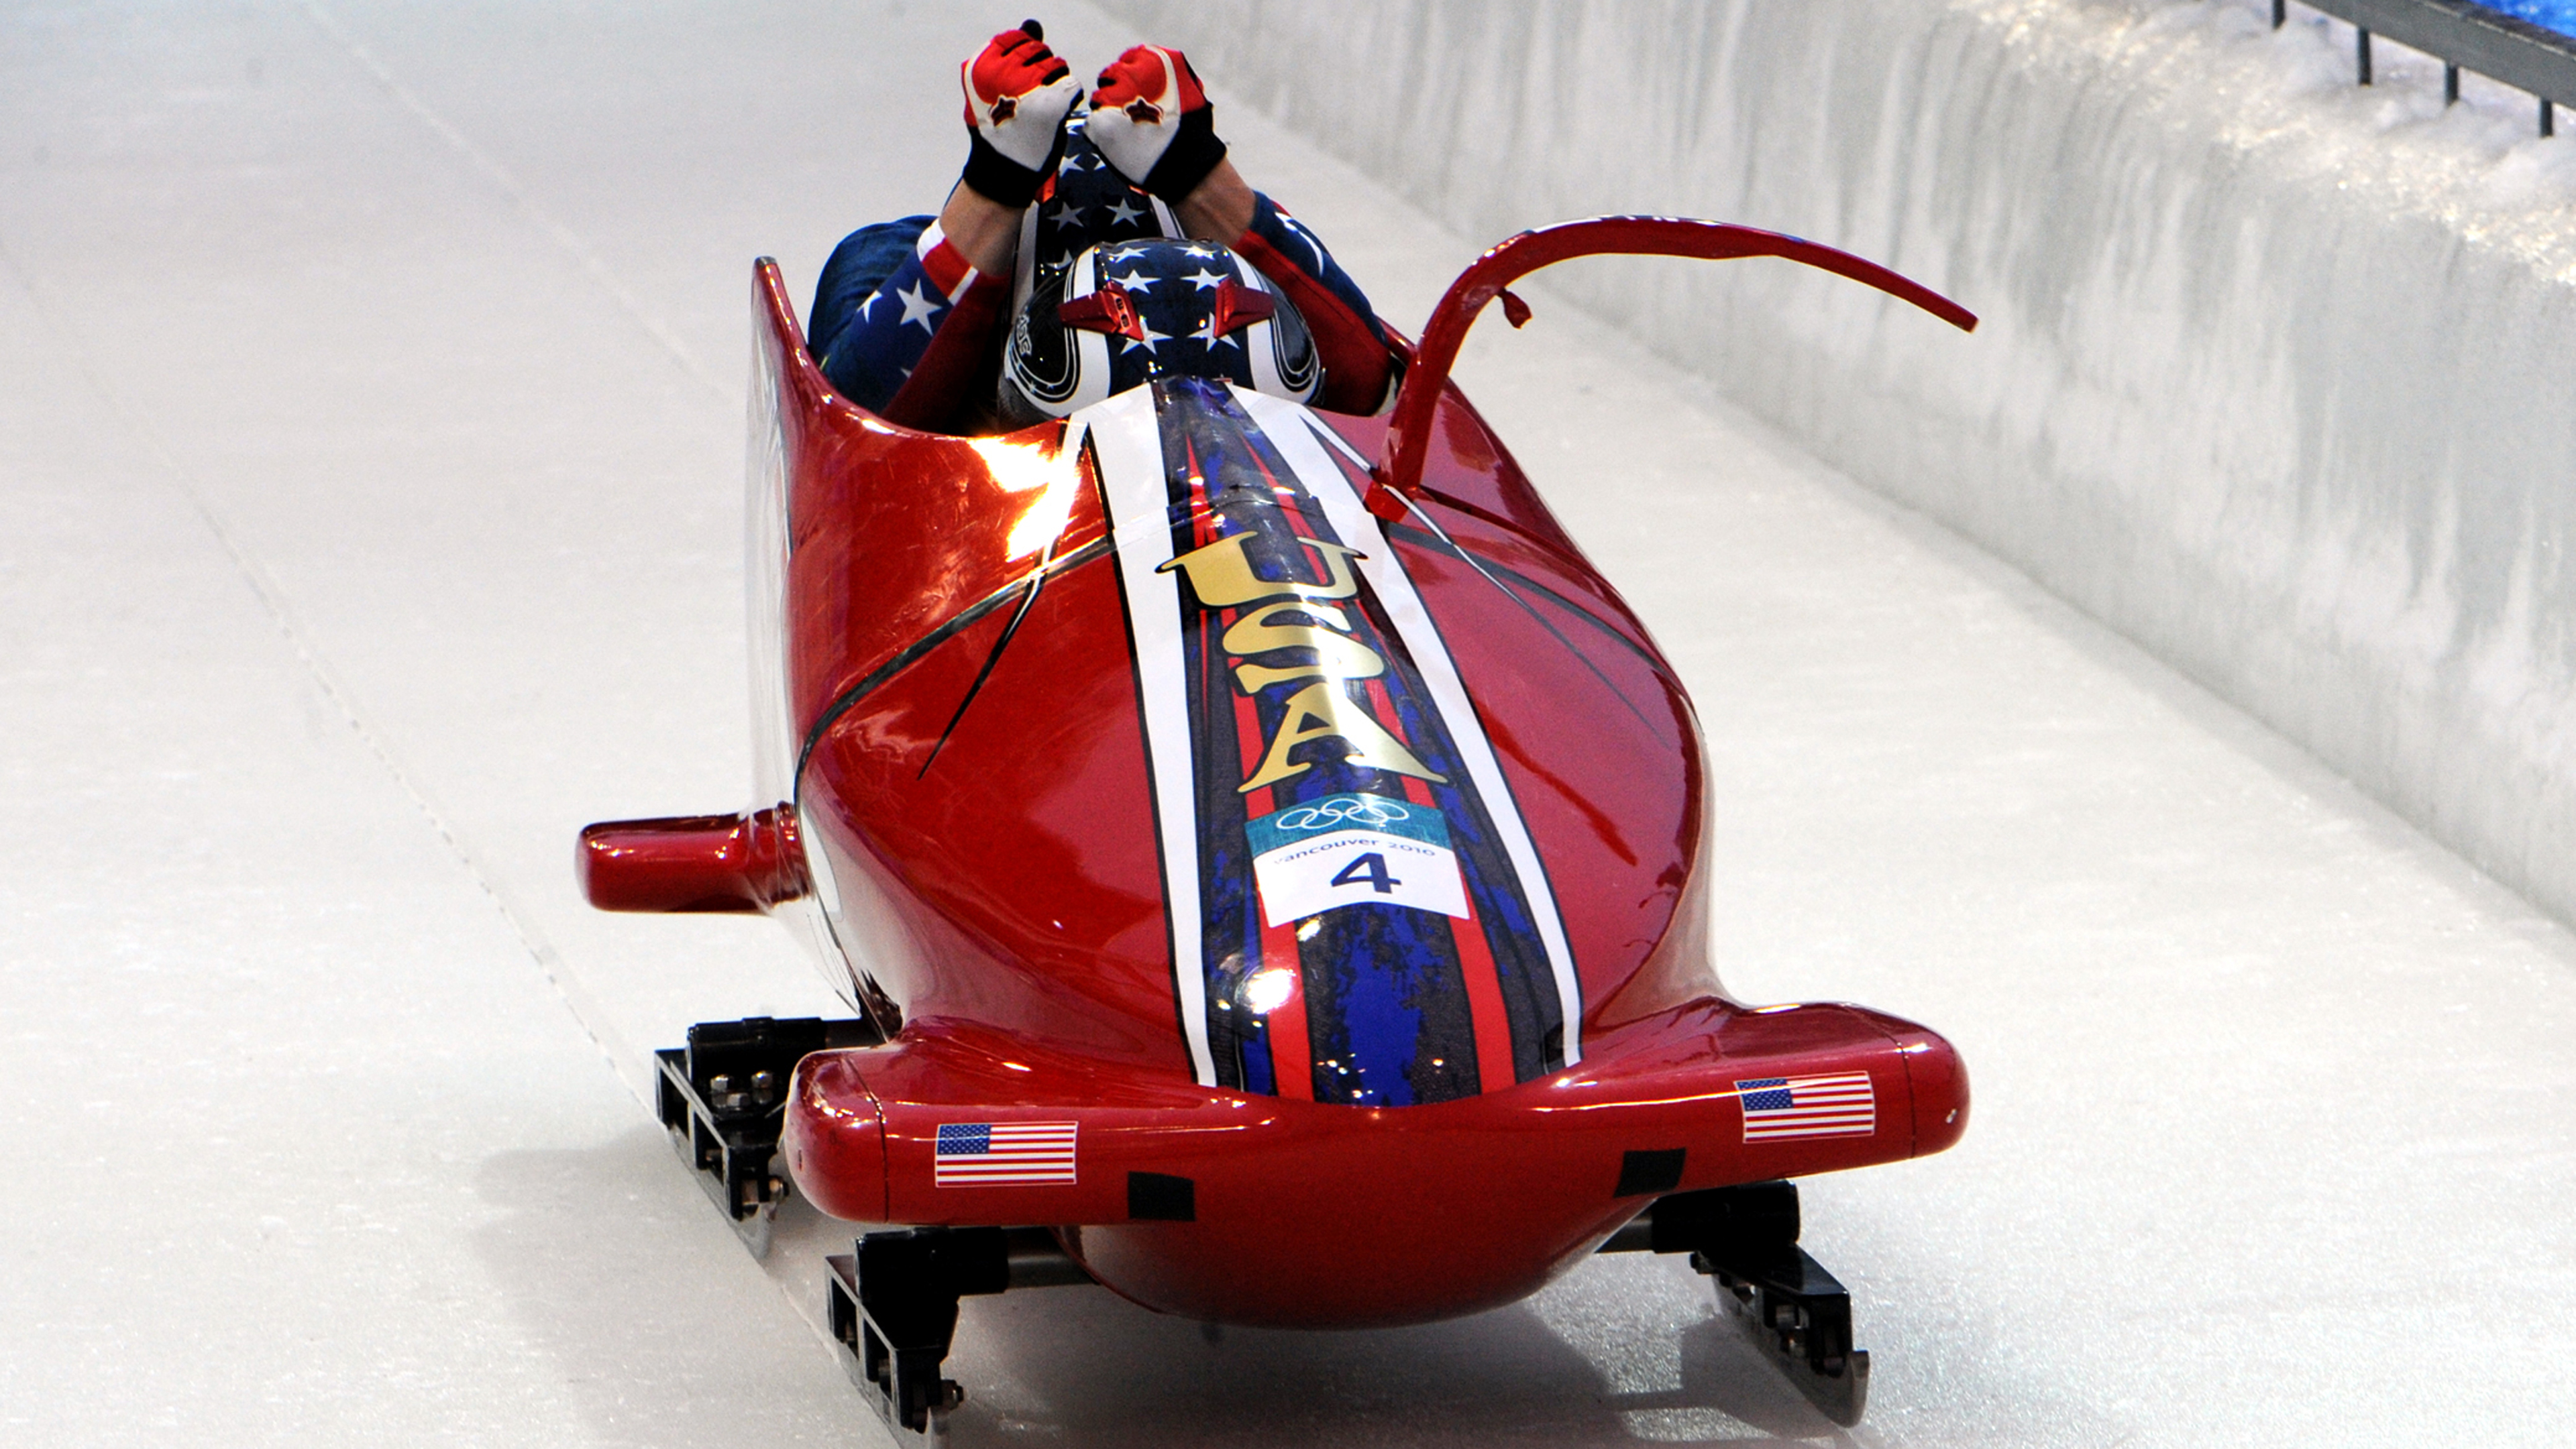 For God and Country: Christian Athletes to Watch in Sochi